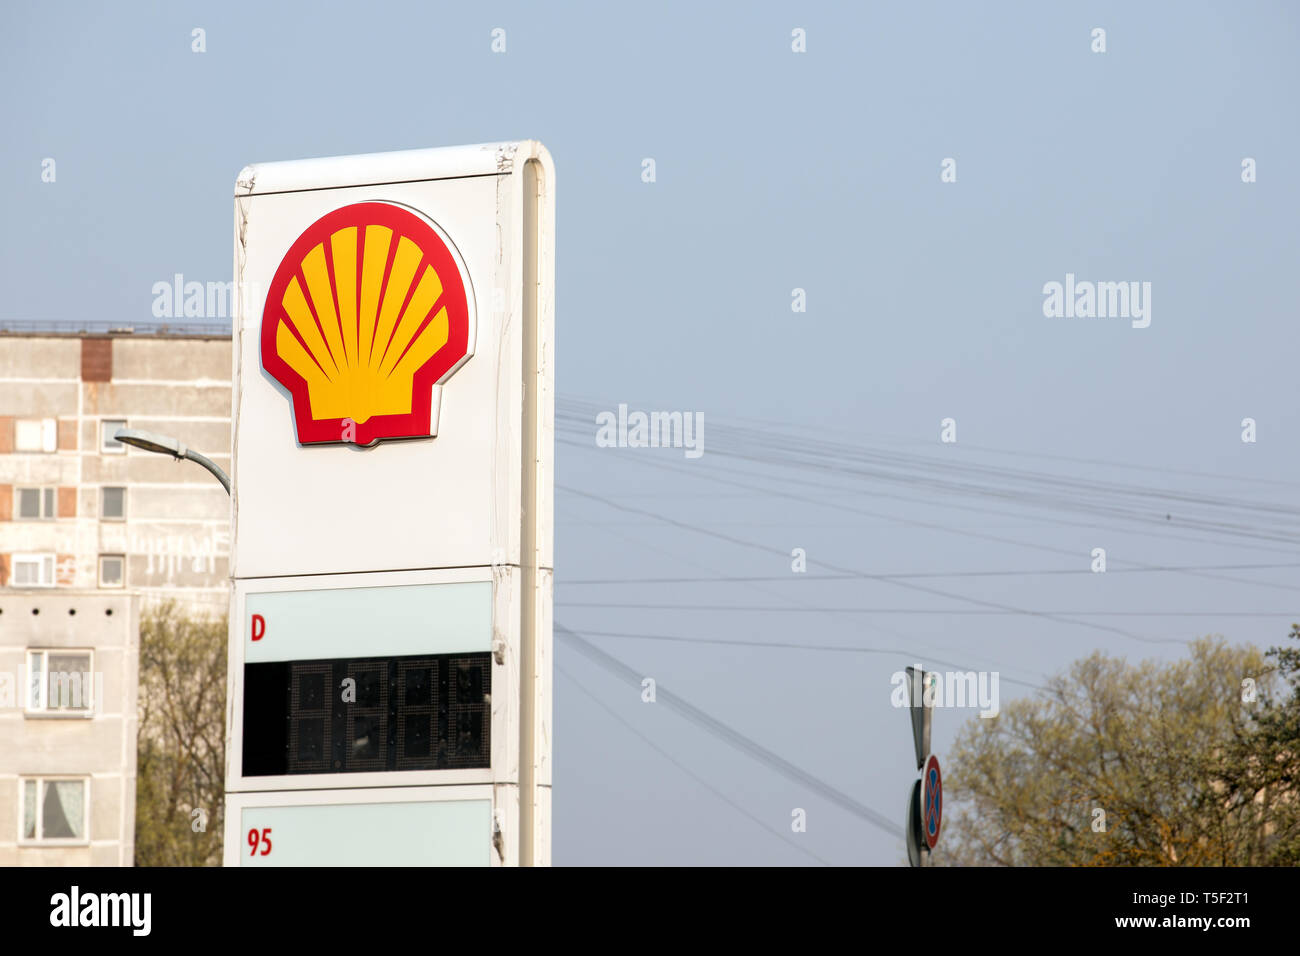 Shell Station Stock Photos & Shell Station Stock Images - Alamy